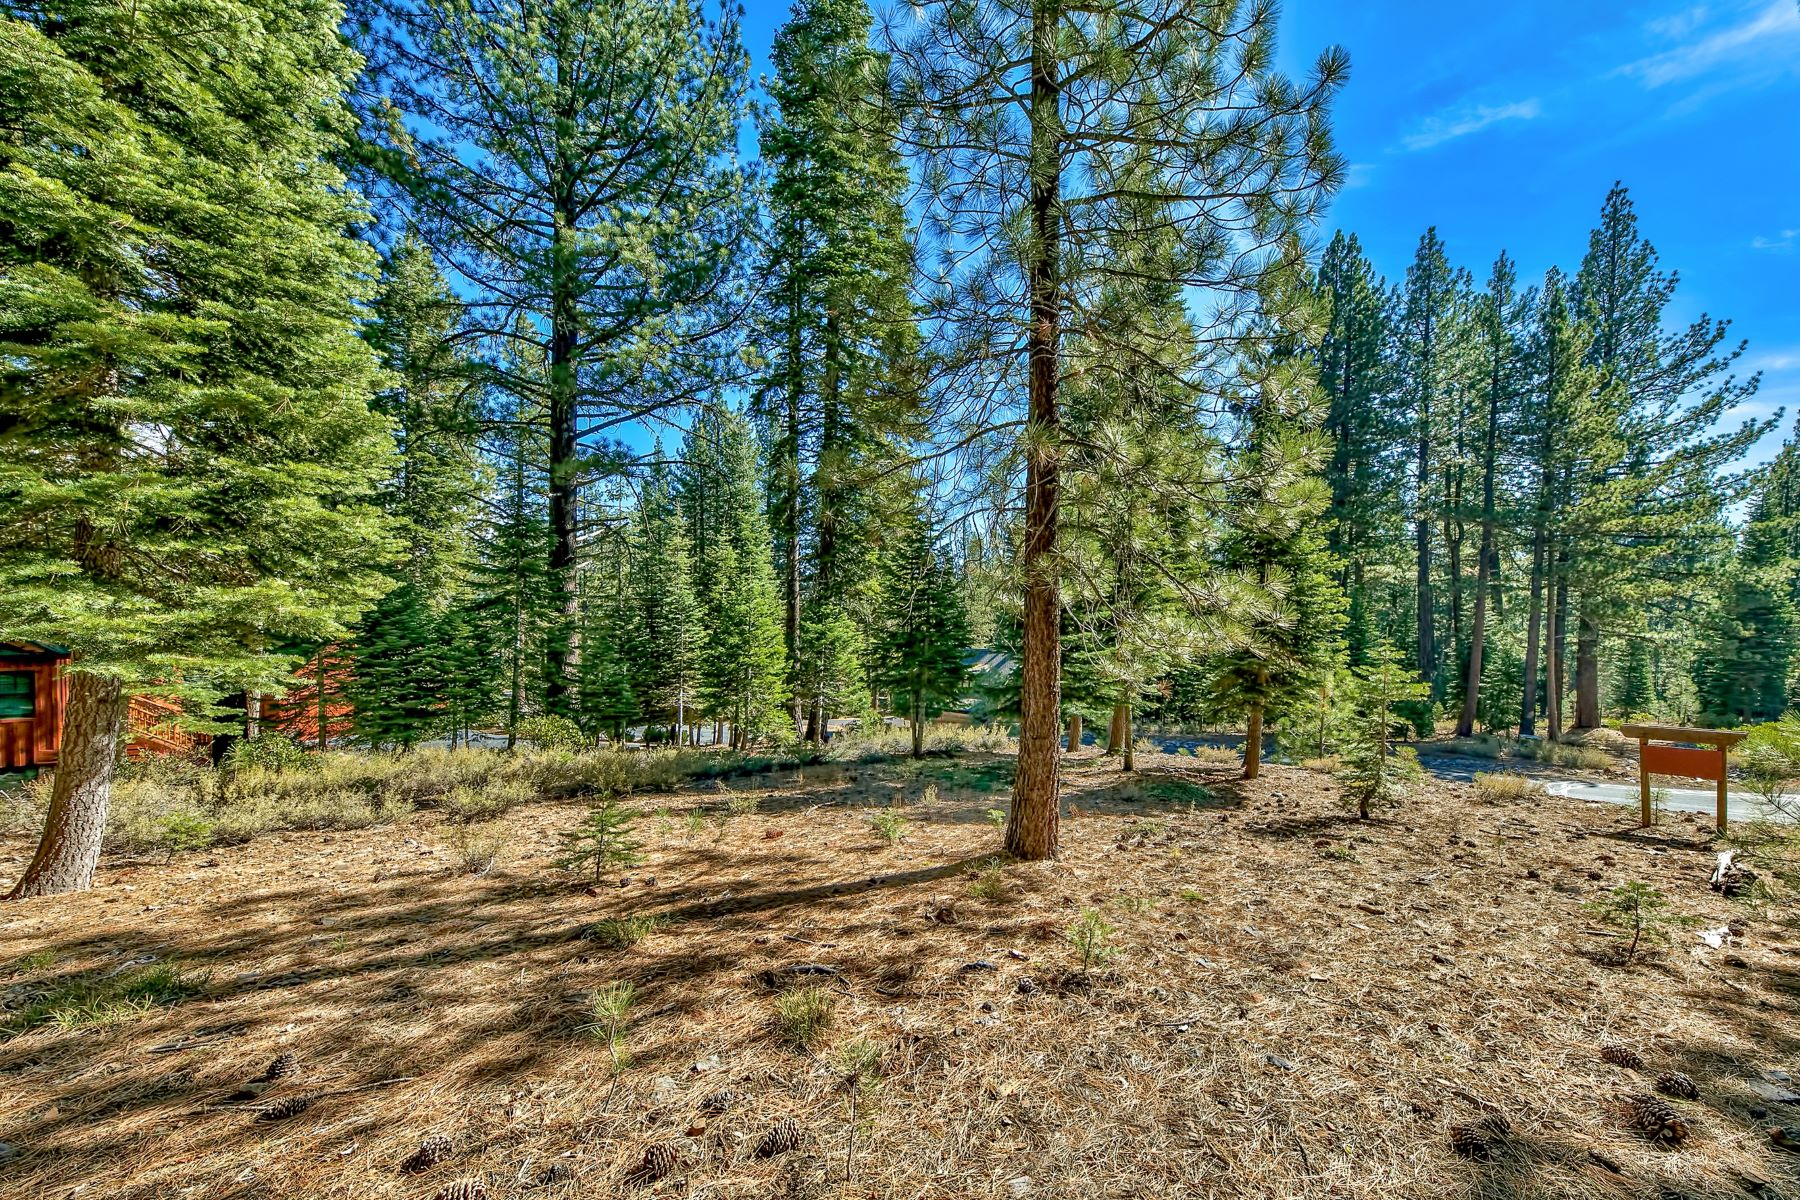 Additional photo for property listing at 11788 Saddleback Drive, Truckee, CA 11788 Saddleback Drive Truckee, California 96161 United States